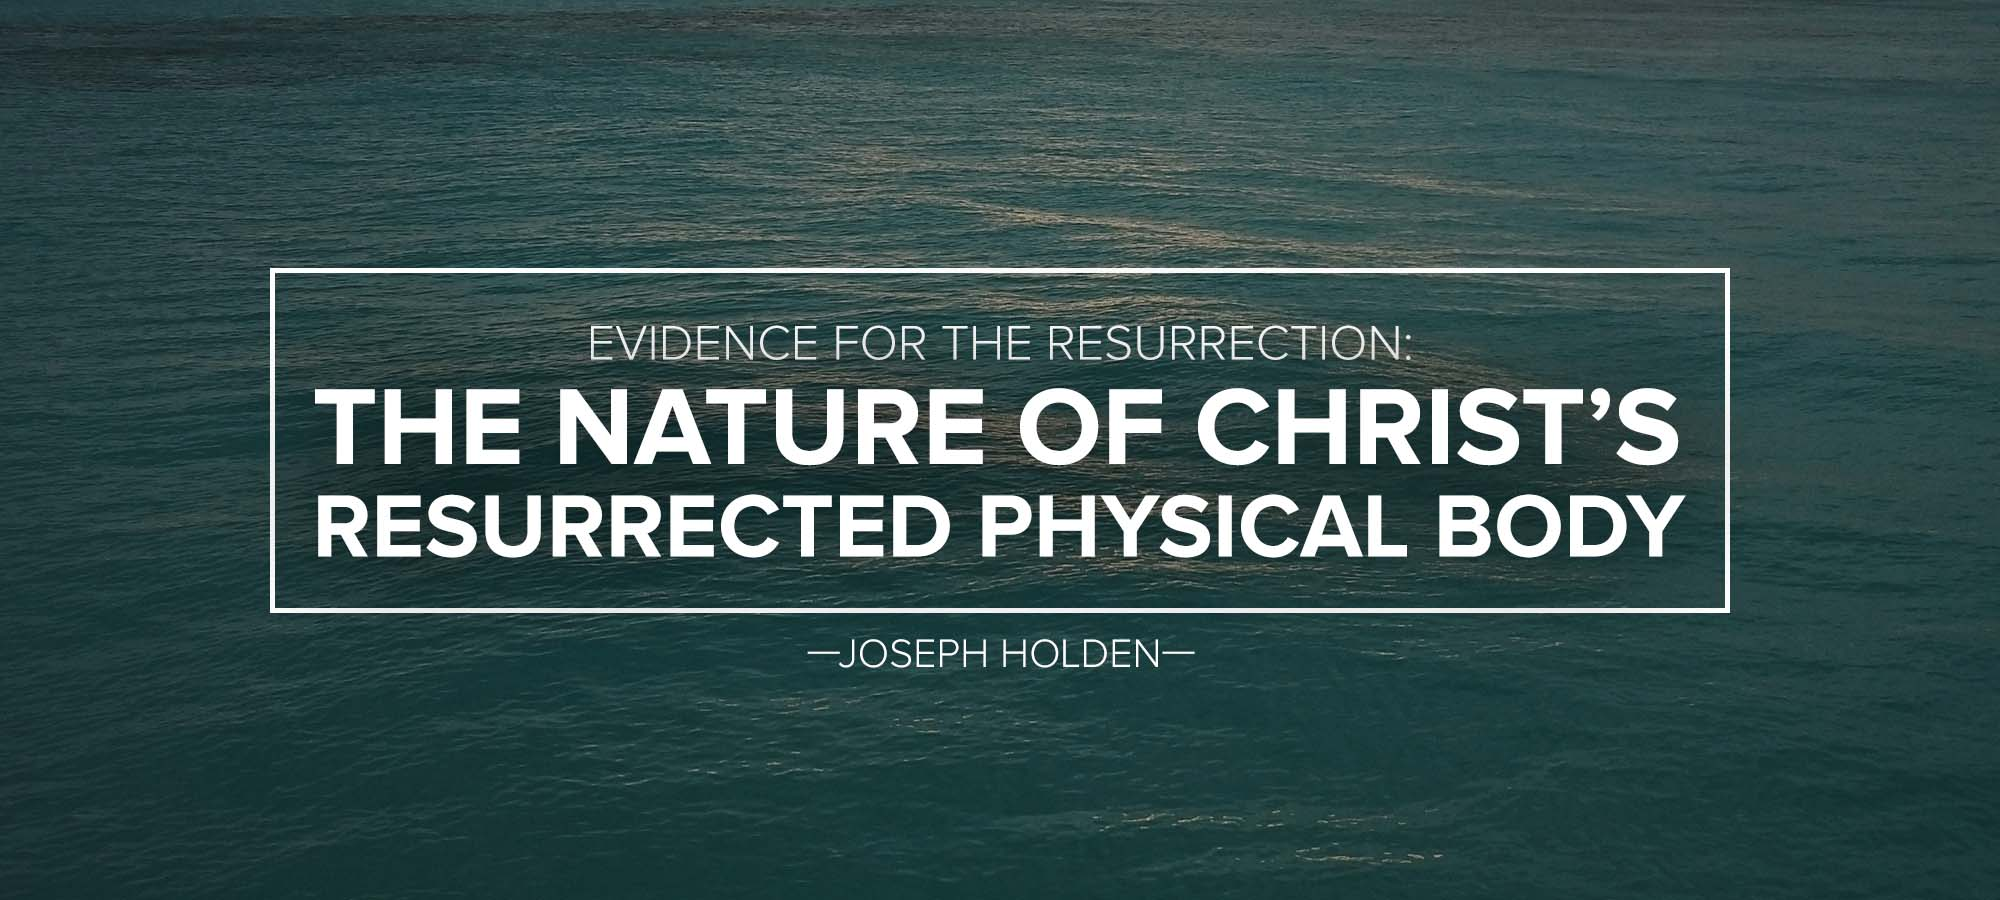 Evidencefor the Resurrection: The Nature of Christ's Resurrected Physical Body